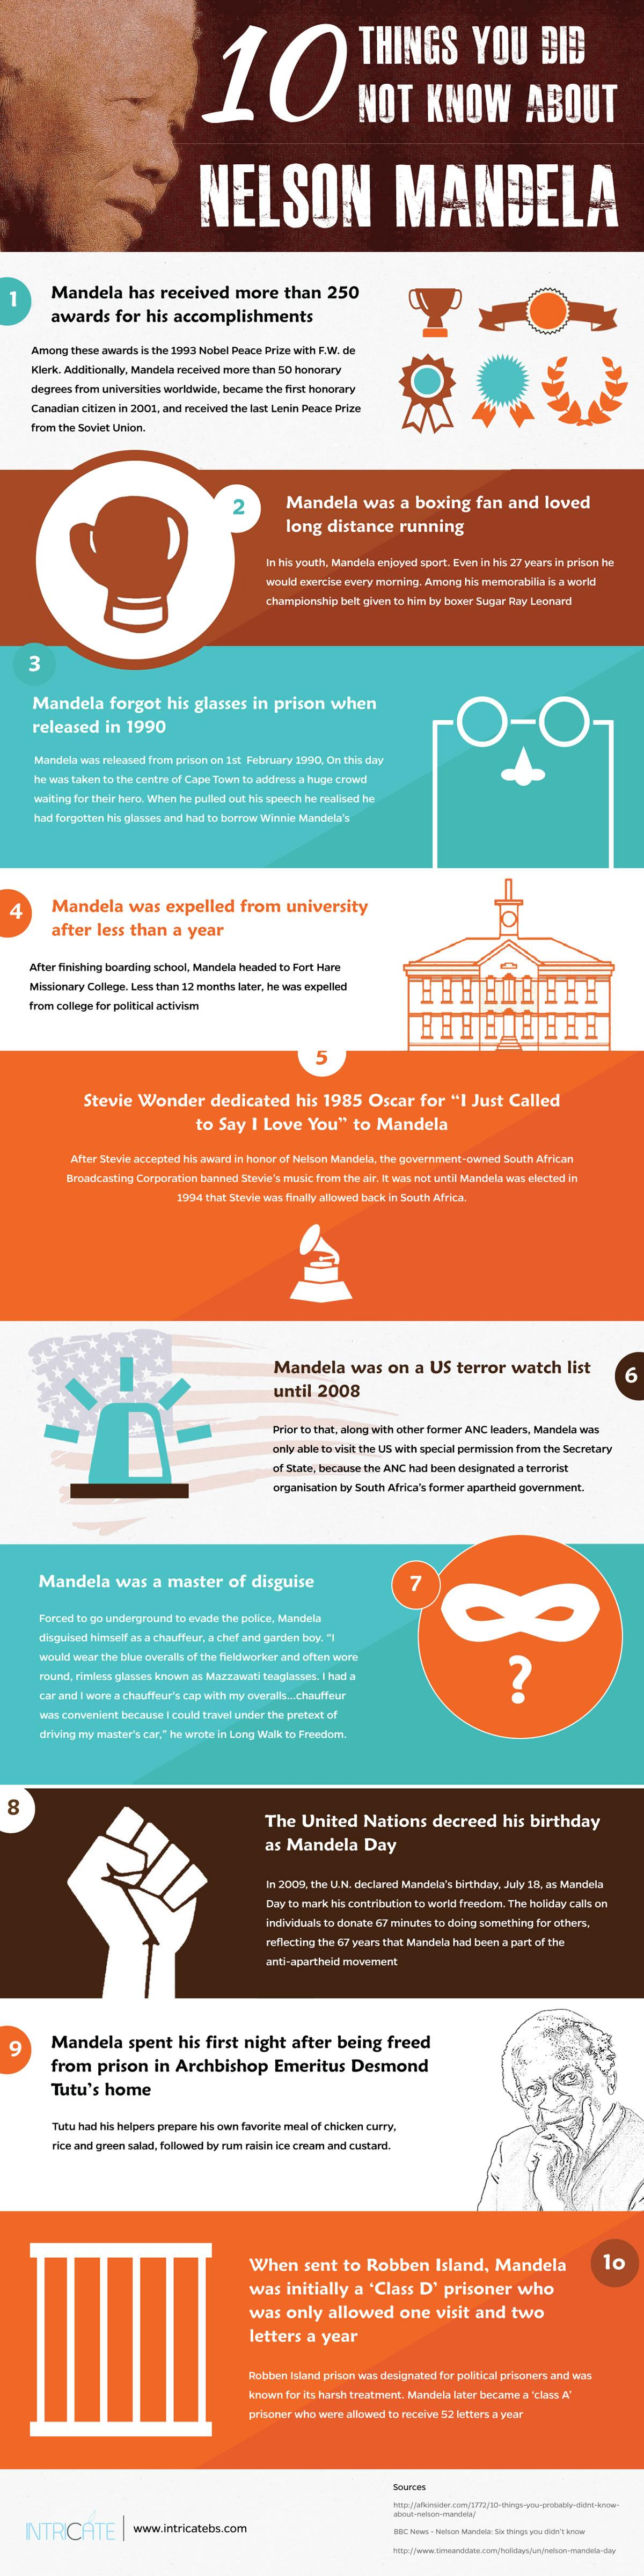 Did You Know These Things About Nelson Mandela [INFOGRAPHIC]